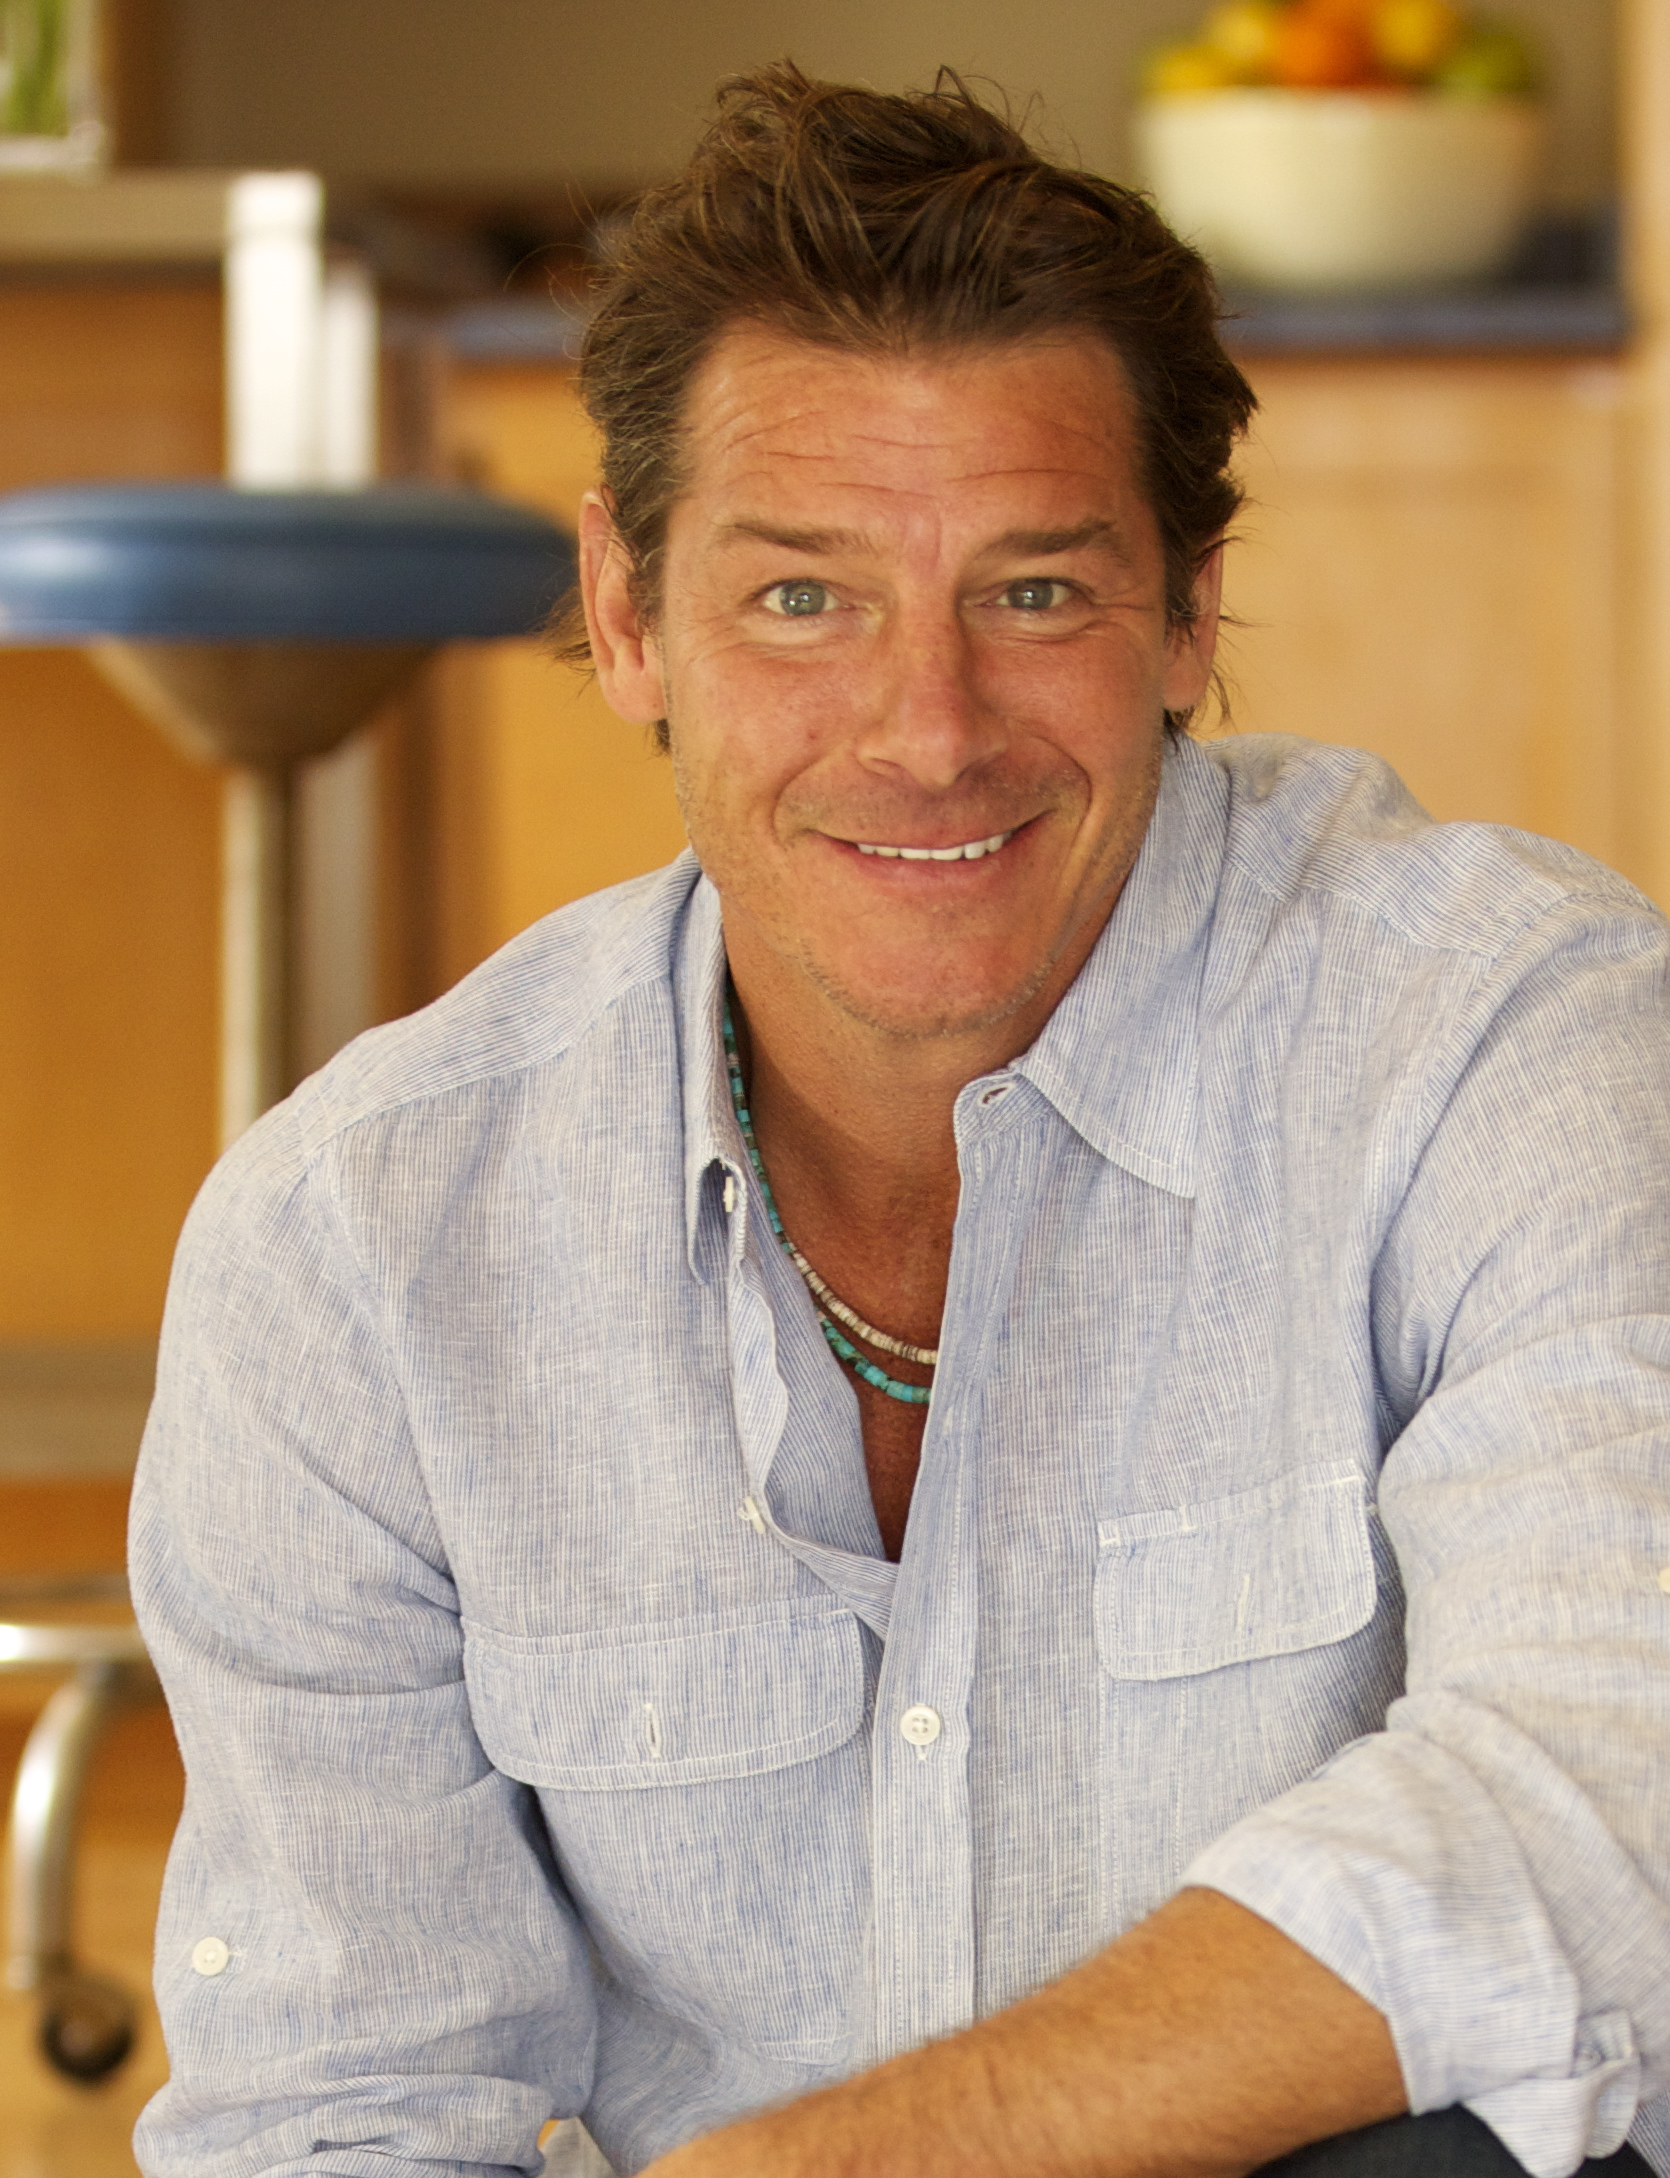 Ty Pennington Will Come To Fort Wayne She Expo As Headliner News Sports Jobs News Sentinel